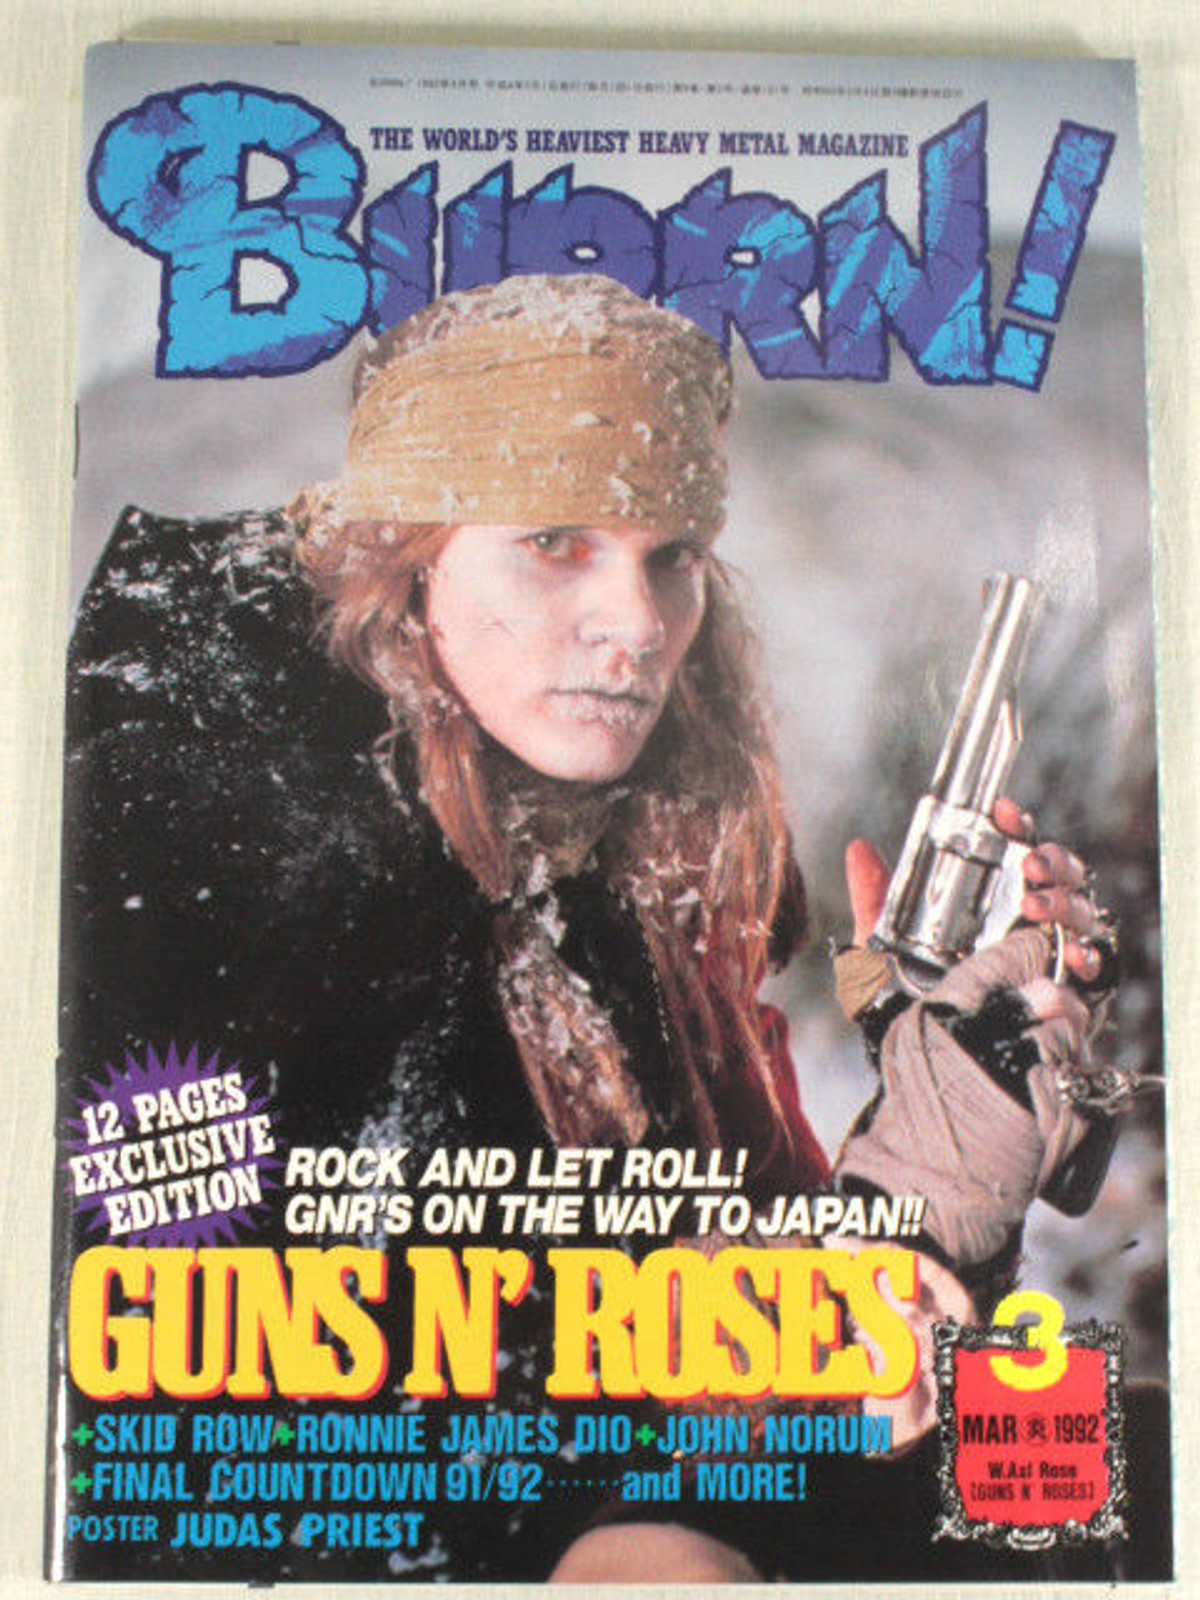 1992/03 BURRN! Japan Rock Magazine GUNS N' ROSES/SKID ROW/EUROPE/JOHN NORUM